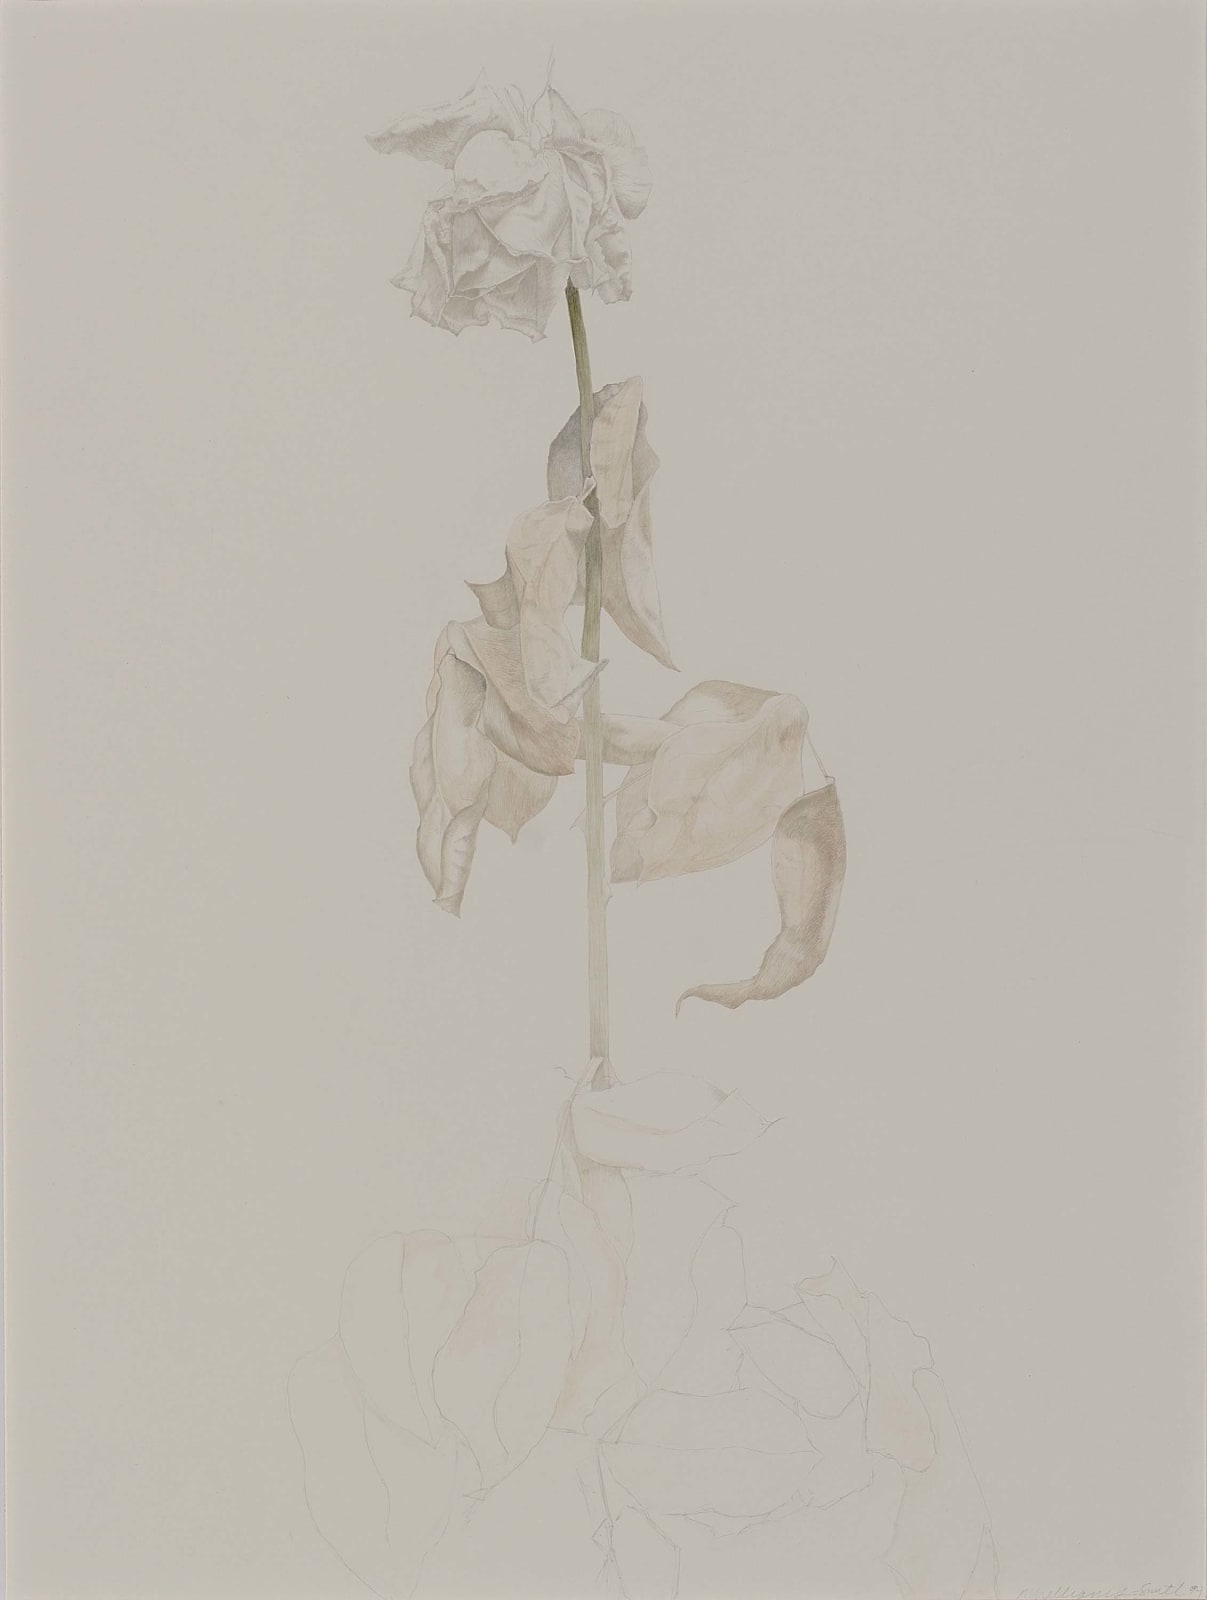 Marjorie Williams-Smith, Untitled, 1994